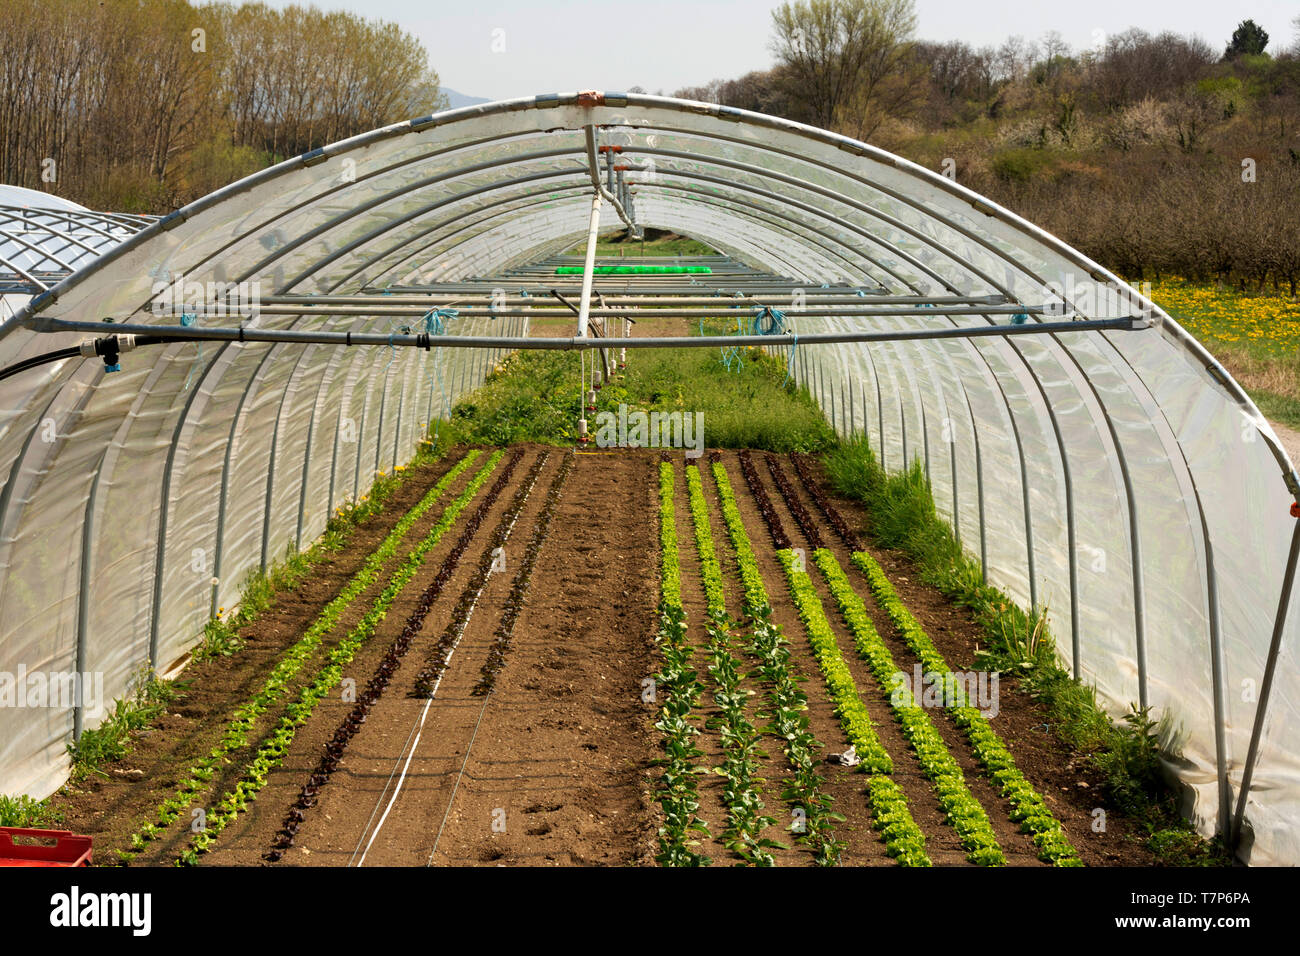 Seedling in a green house - Stock Image